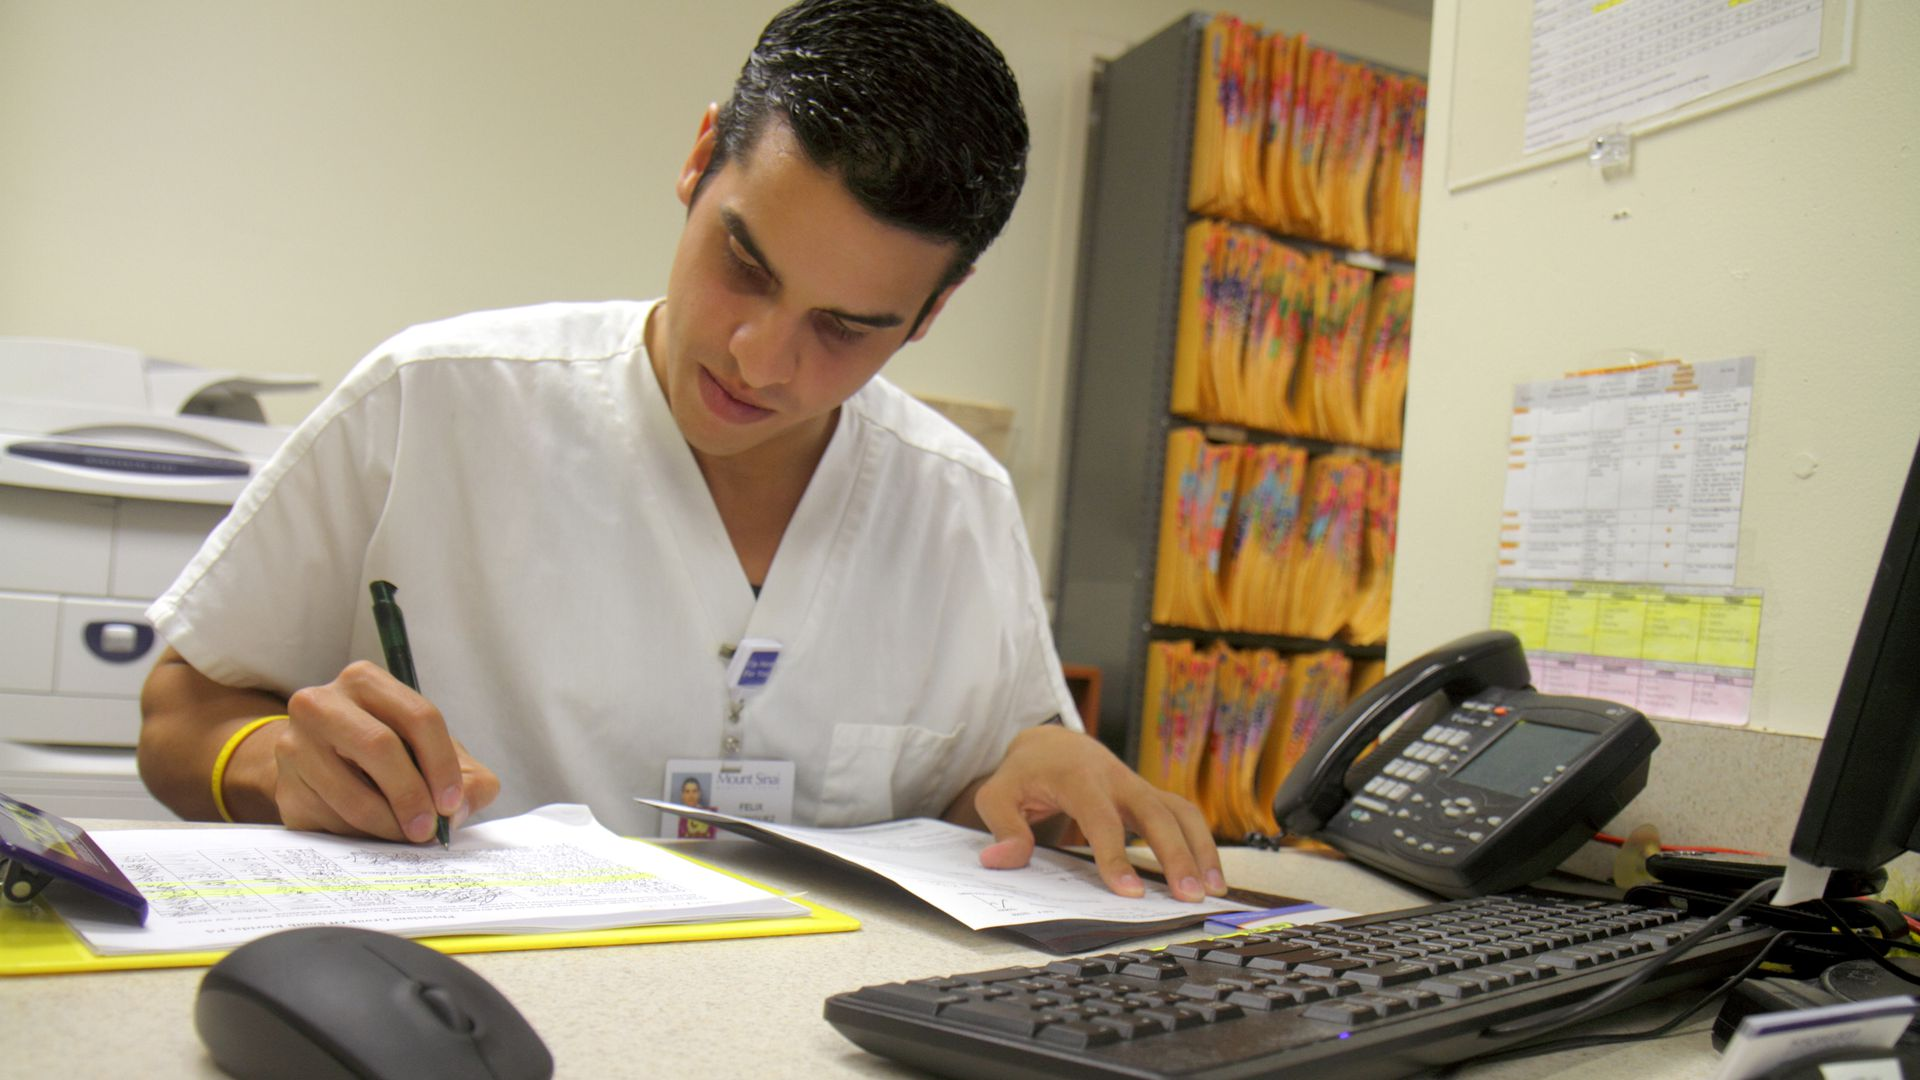 A man at the front desk of a doctors office signs forms